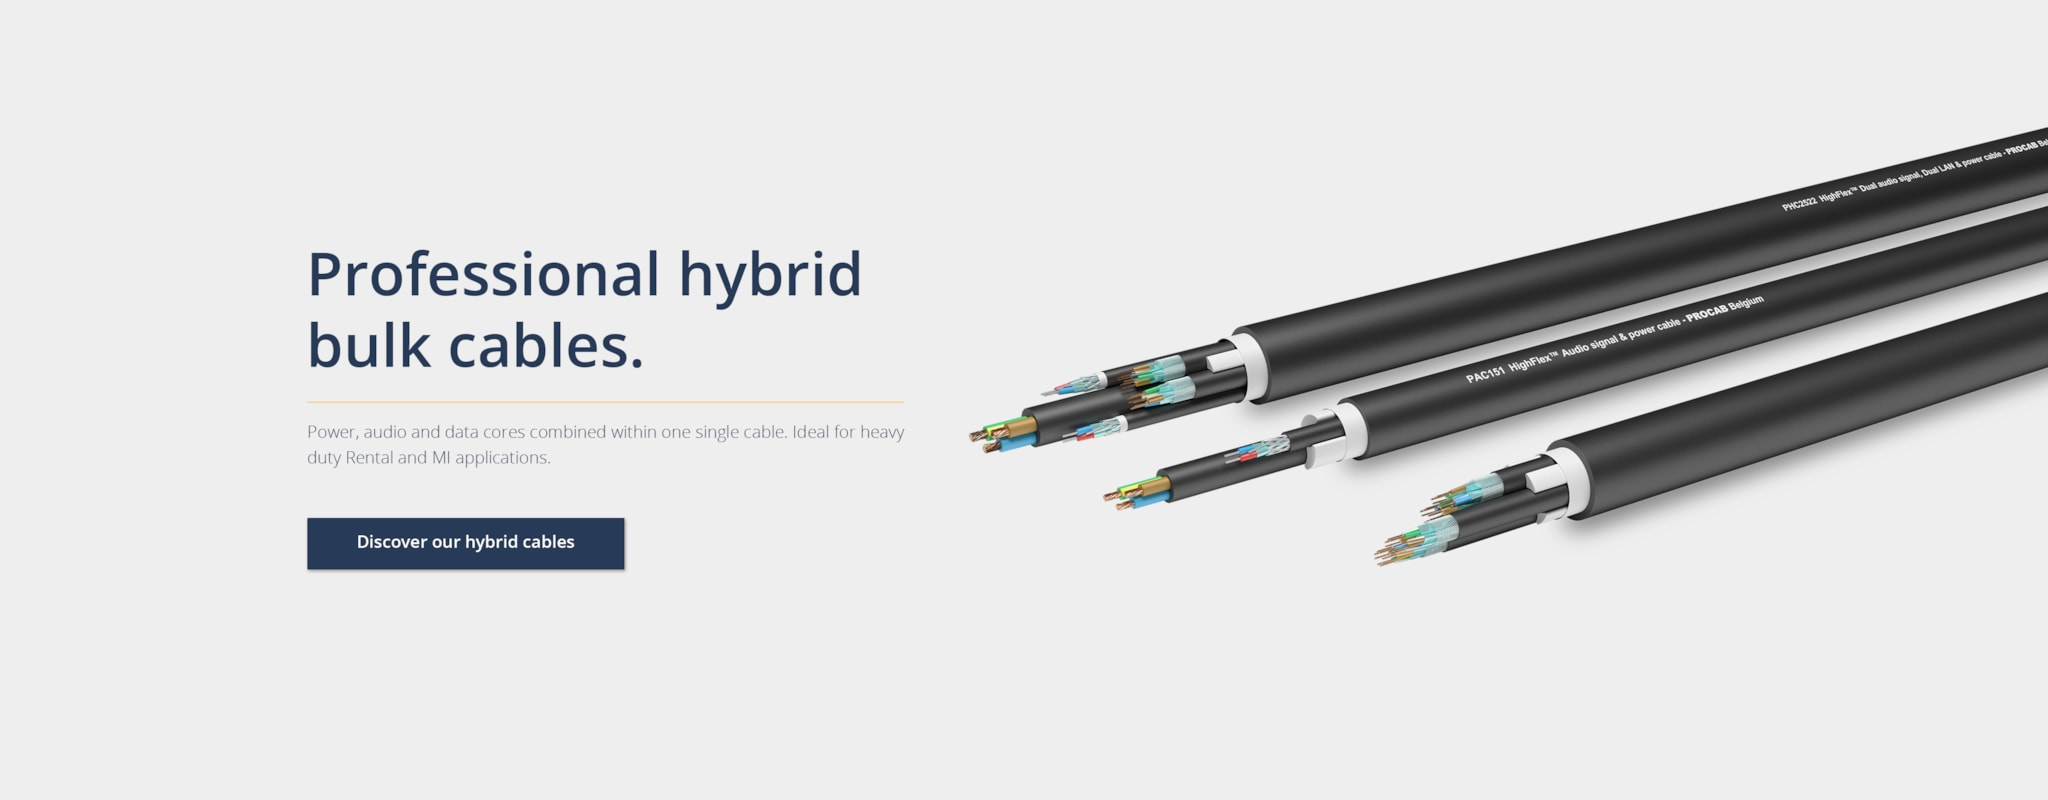 Power, audio and data cores within one cable.